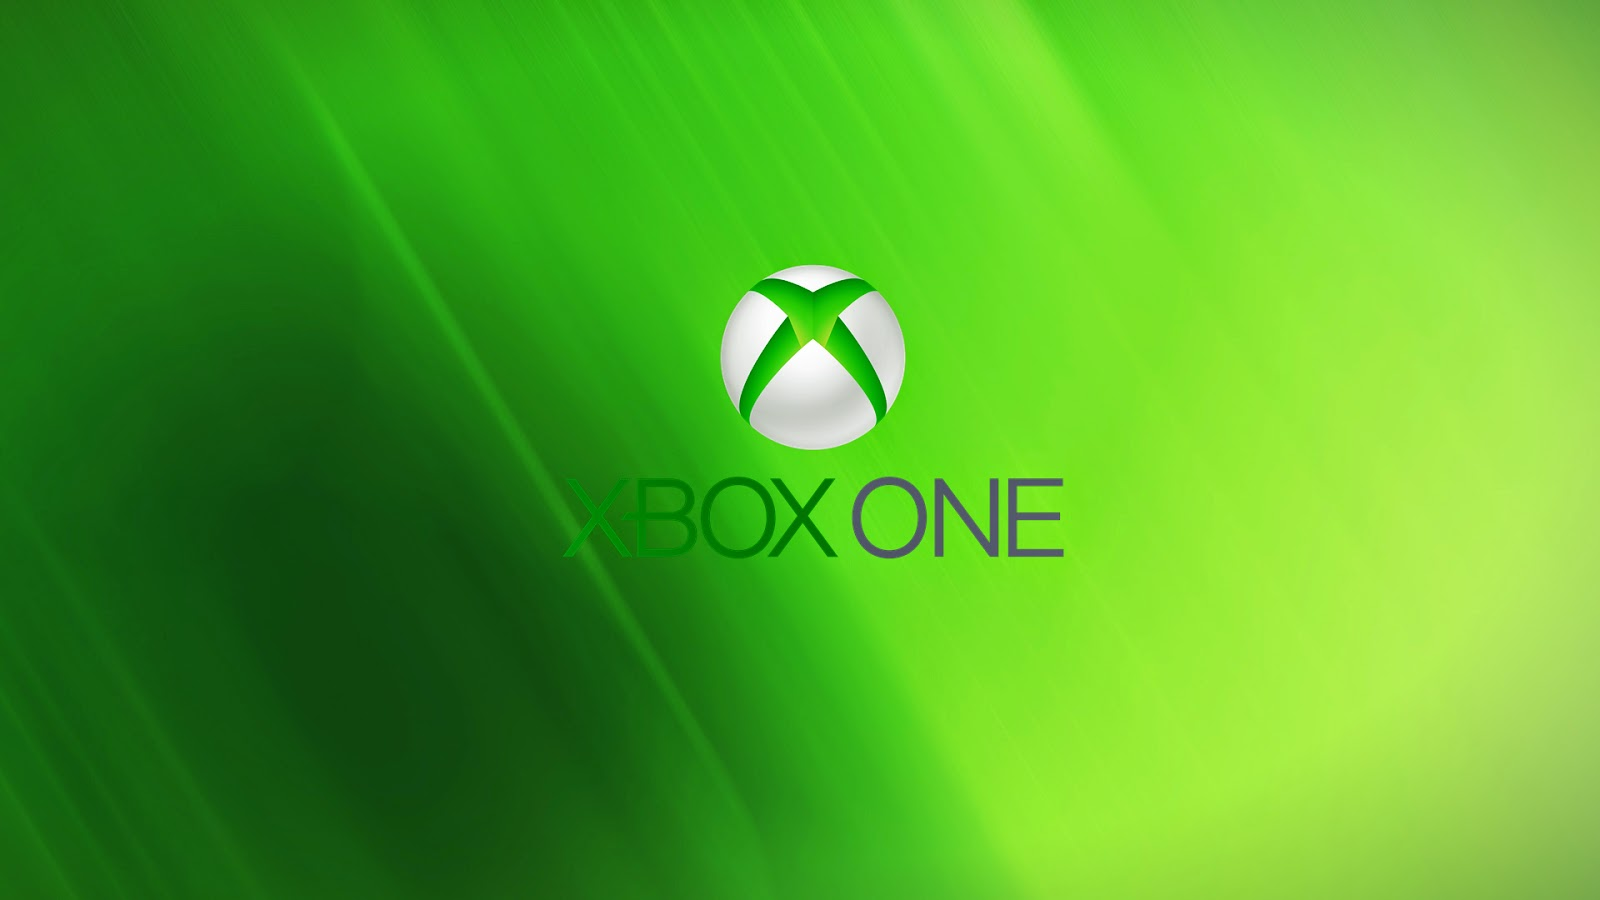 xbox one wallpapers hd hd wallpapers